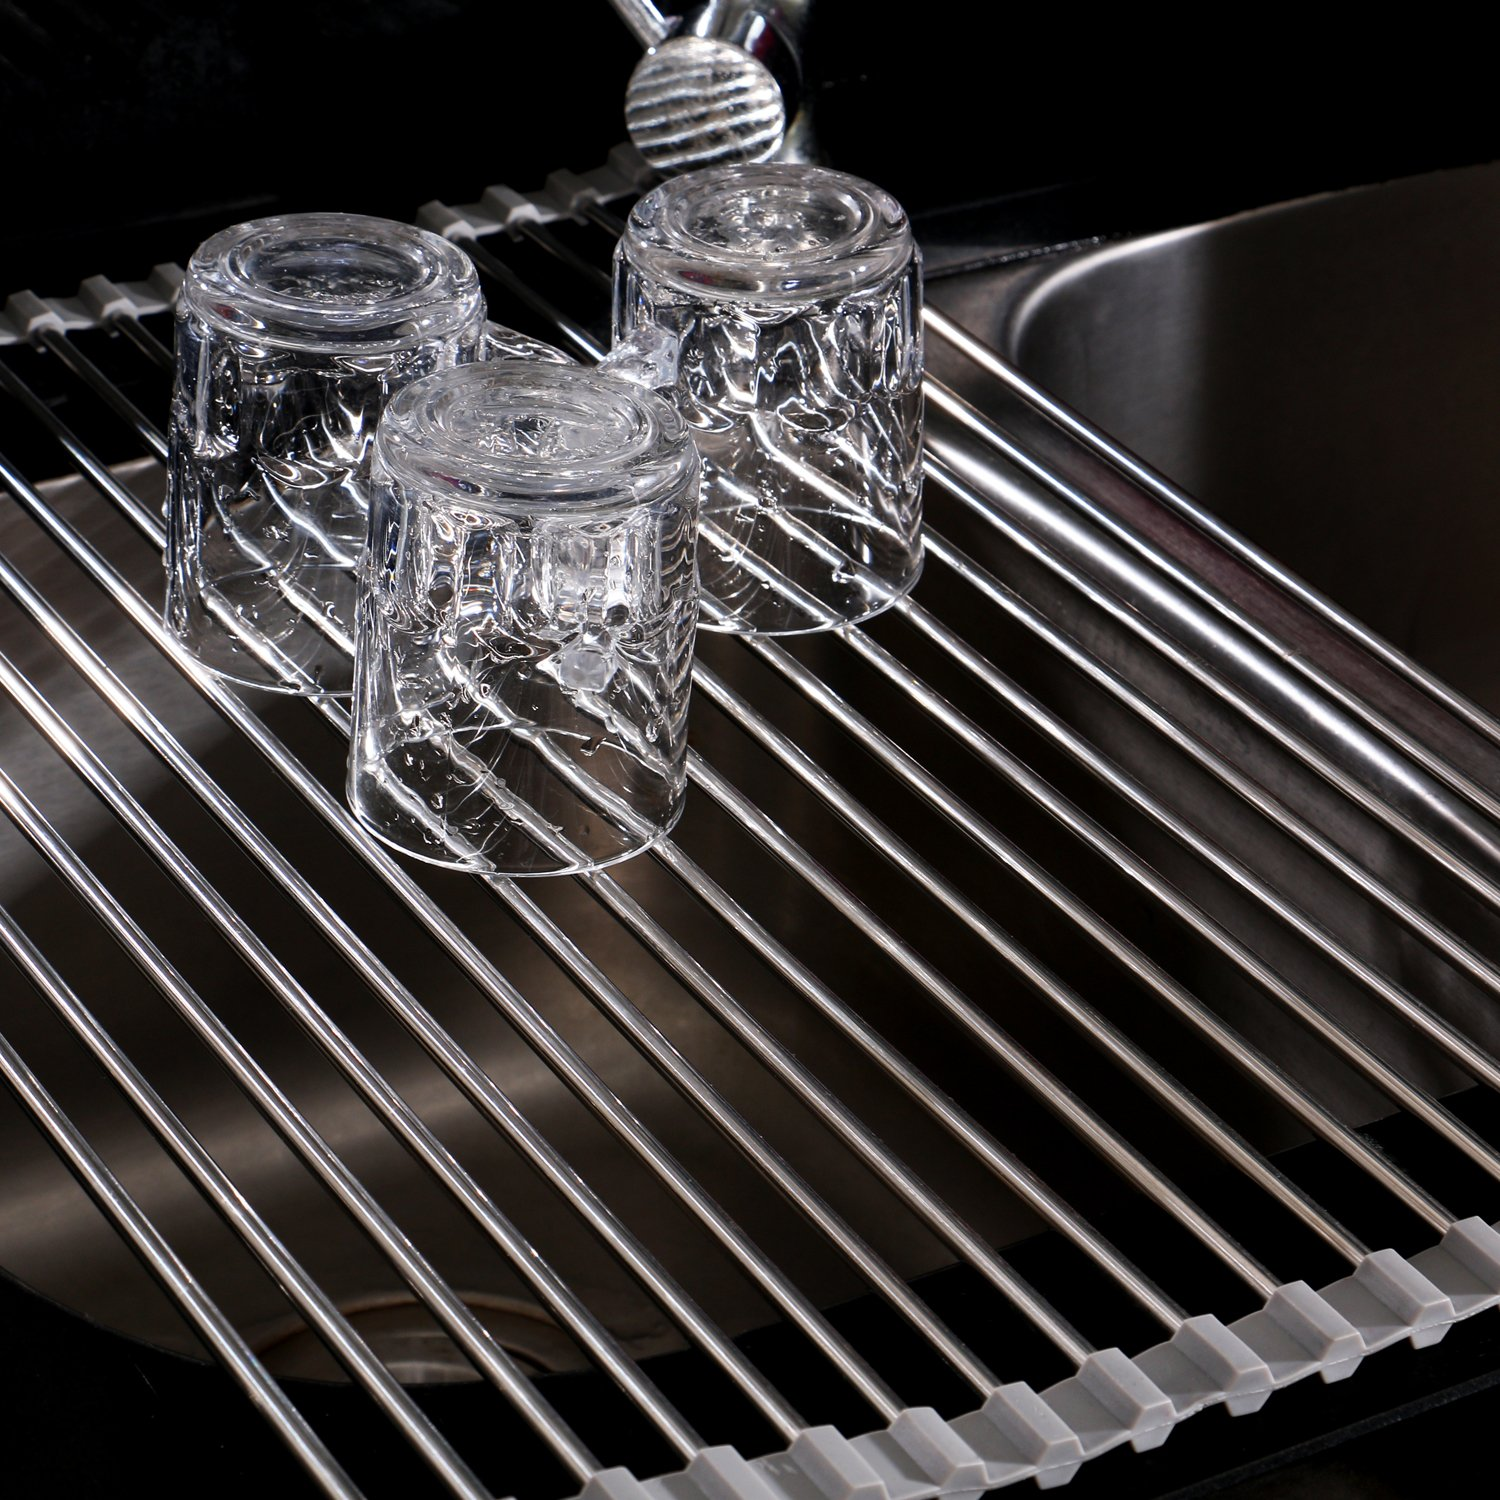 Roll-Up Dish Drying Rack, Stainless Steel, 20-1/2 L x 13-1/8 W x 1/4 H by THETIS Homes by THETIS Homes